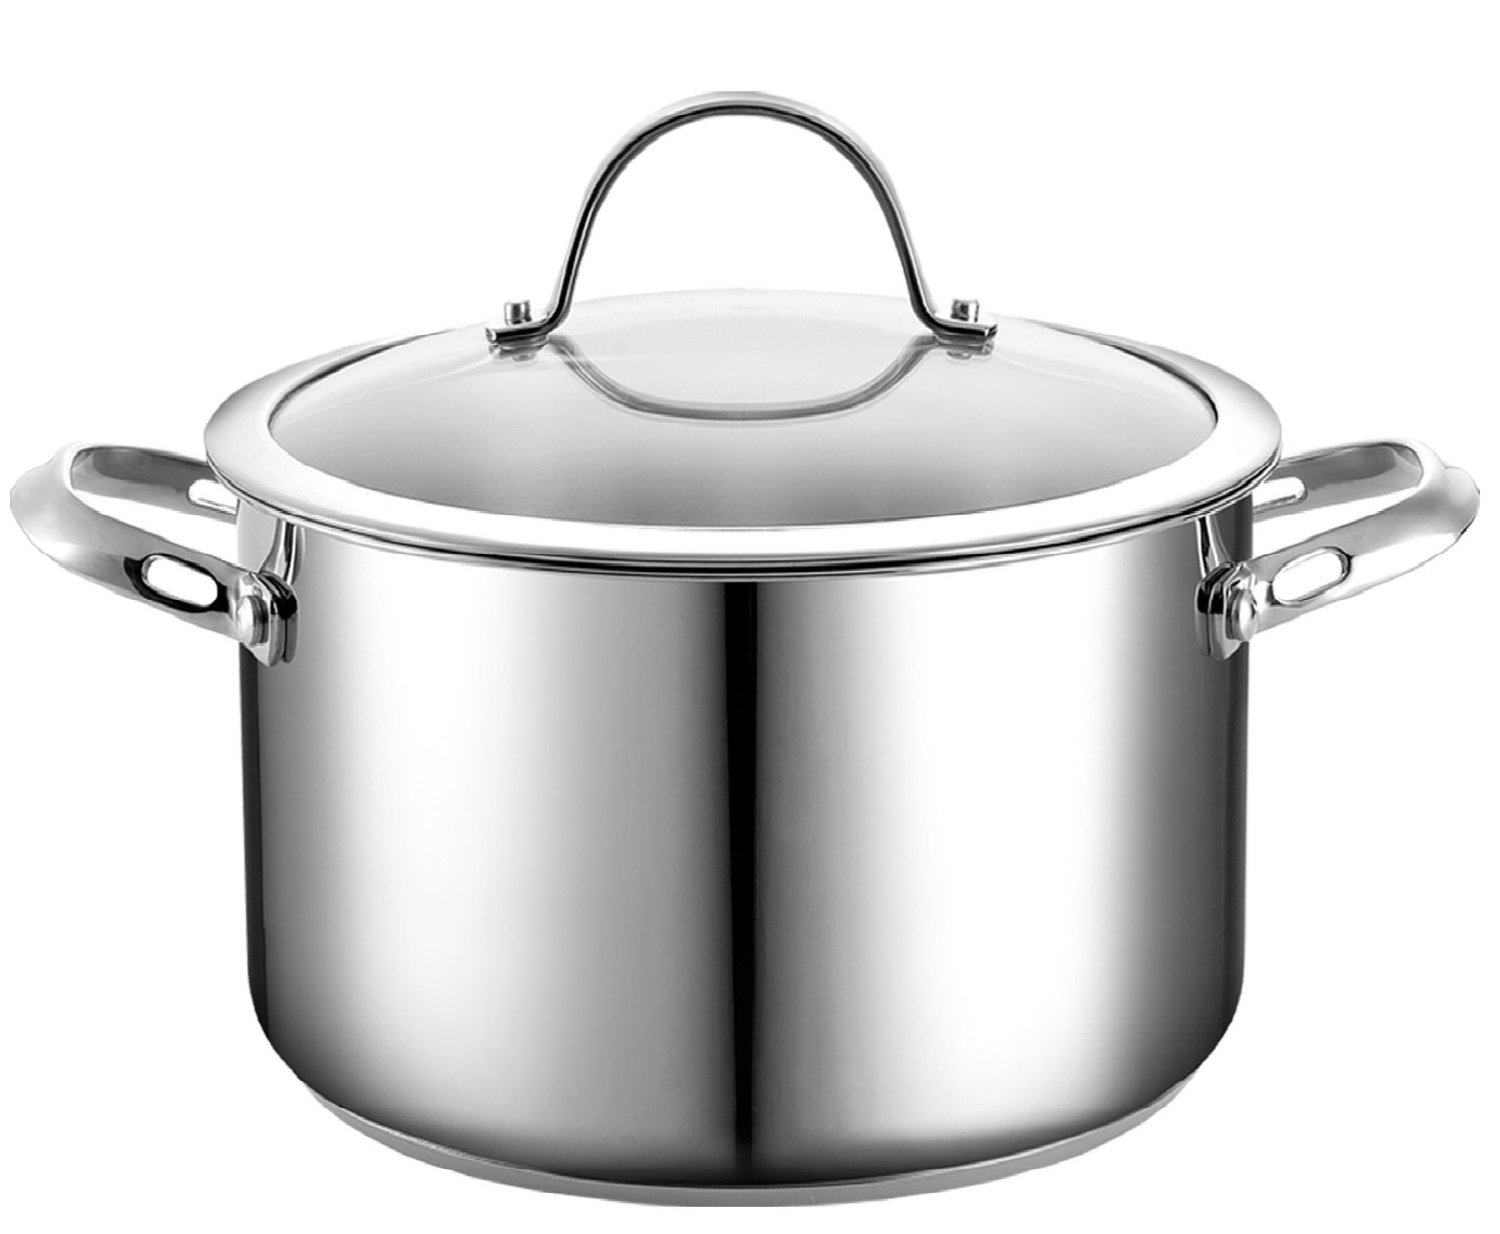 Cooks Standard 6-Quart Stainless Steel Stockpot with Lid by Cooks Standard